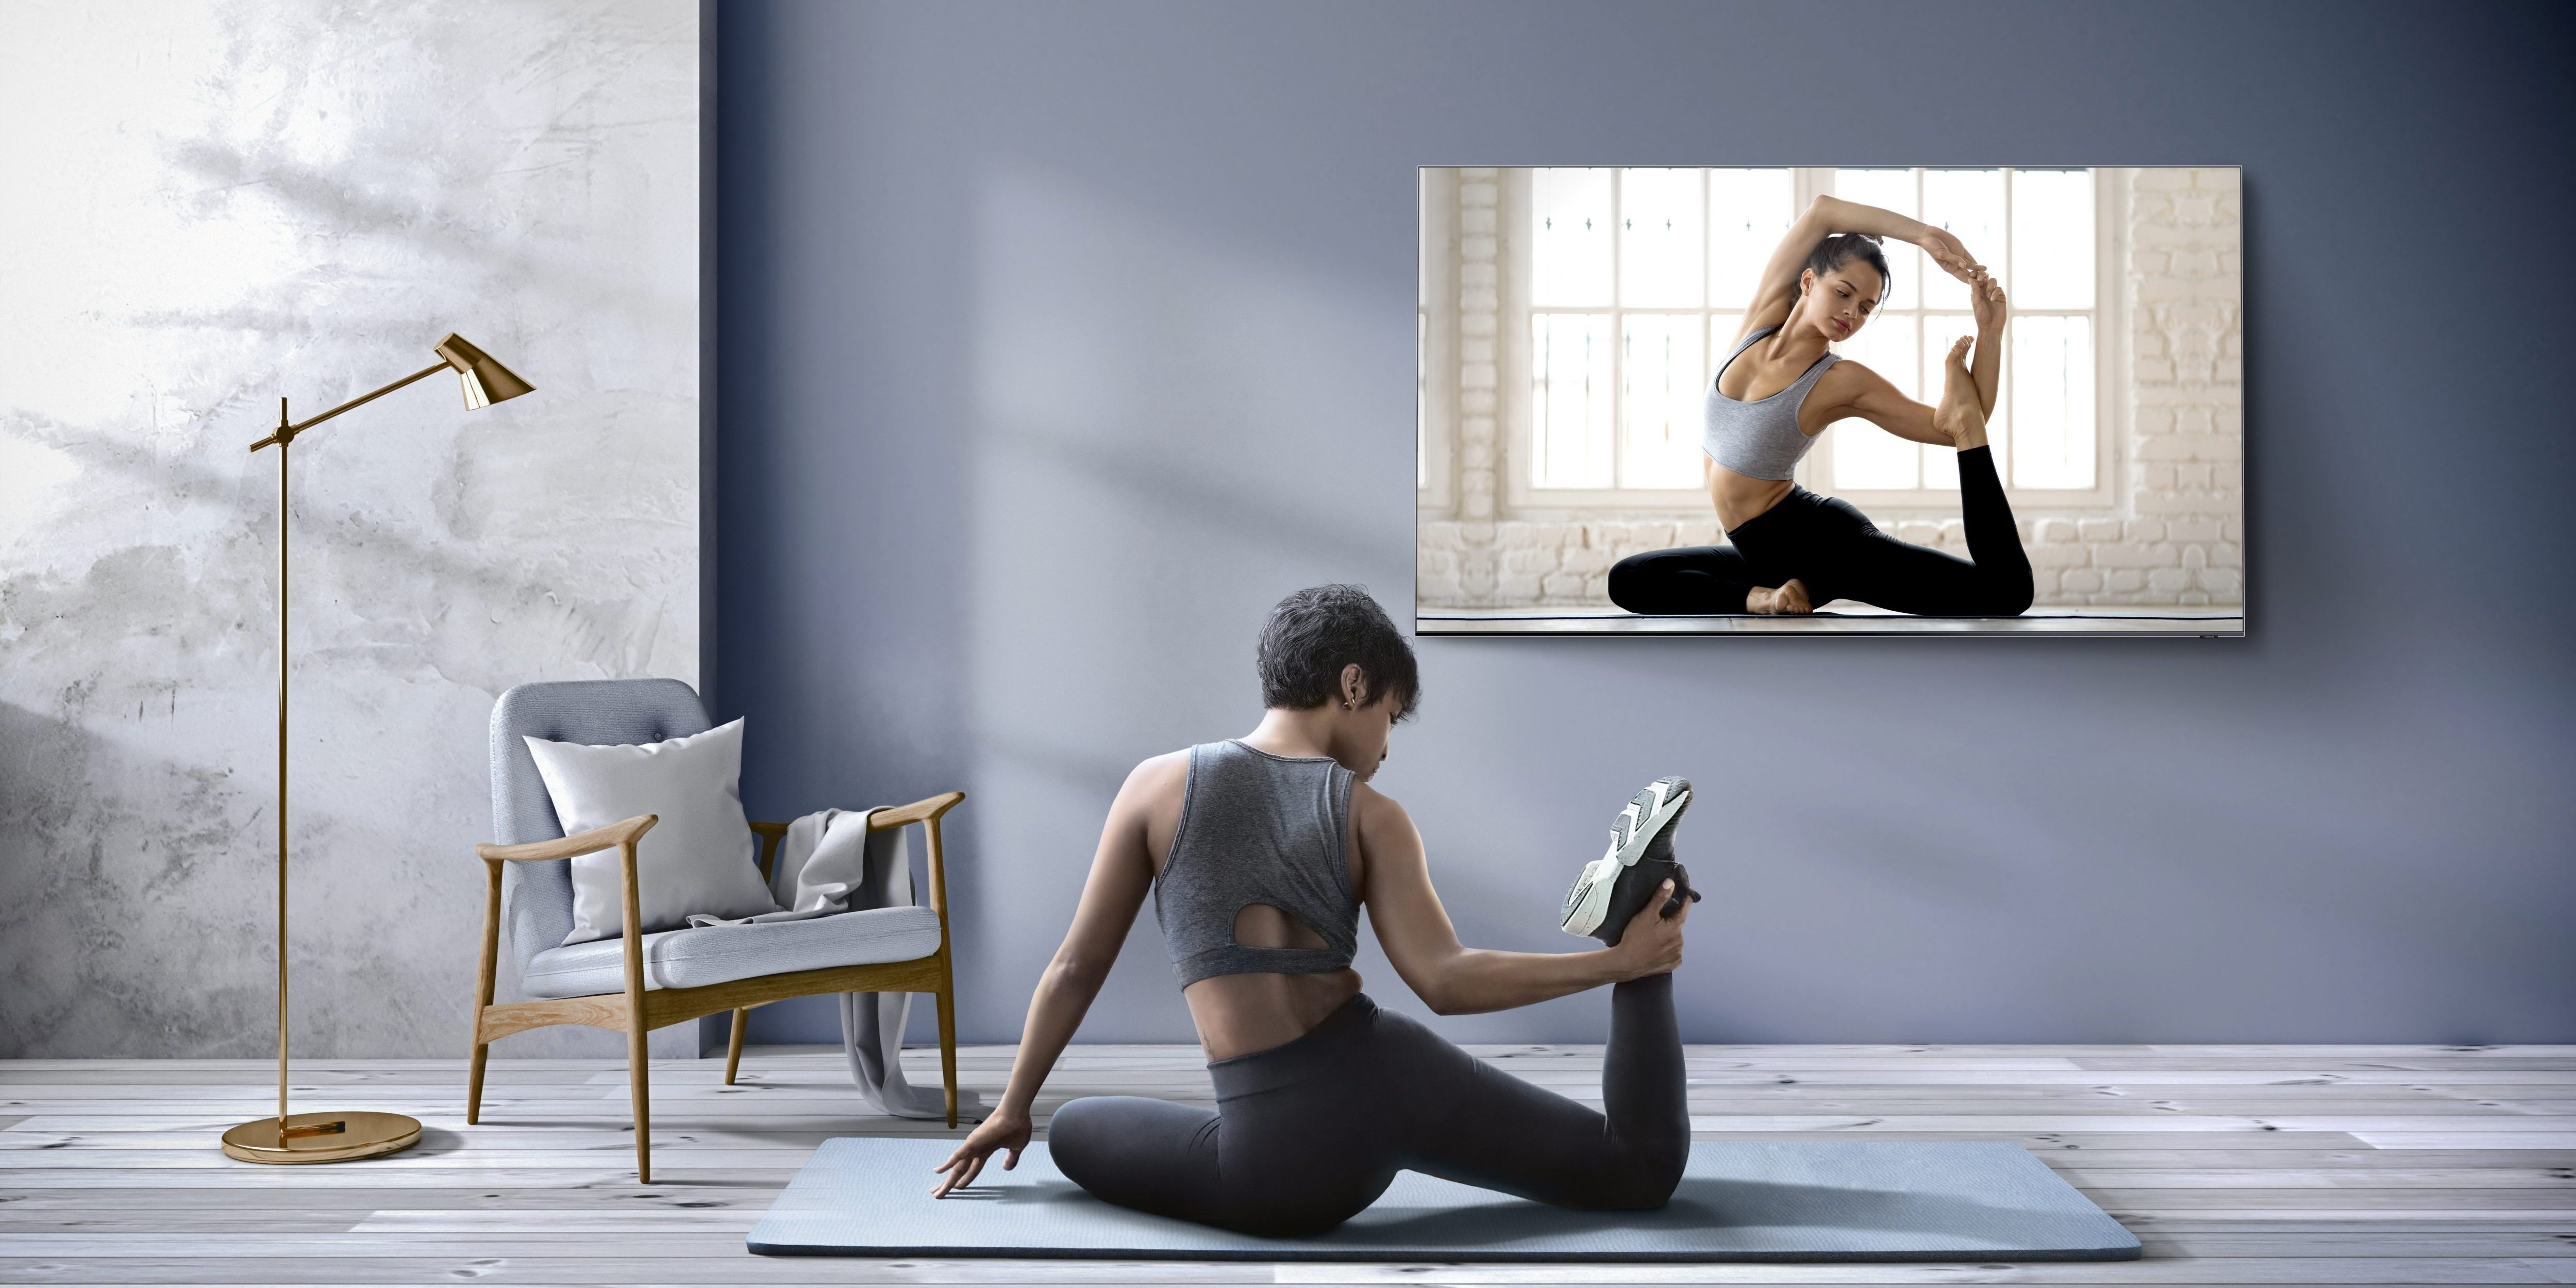 Samsung Partners with Leading Personal Fitness Brands to Launch Wellness Apps on Its Smart TV Platform